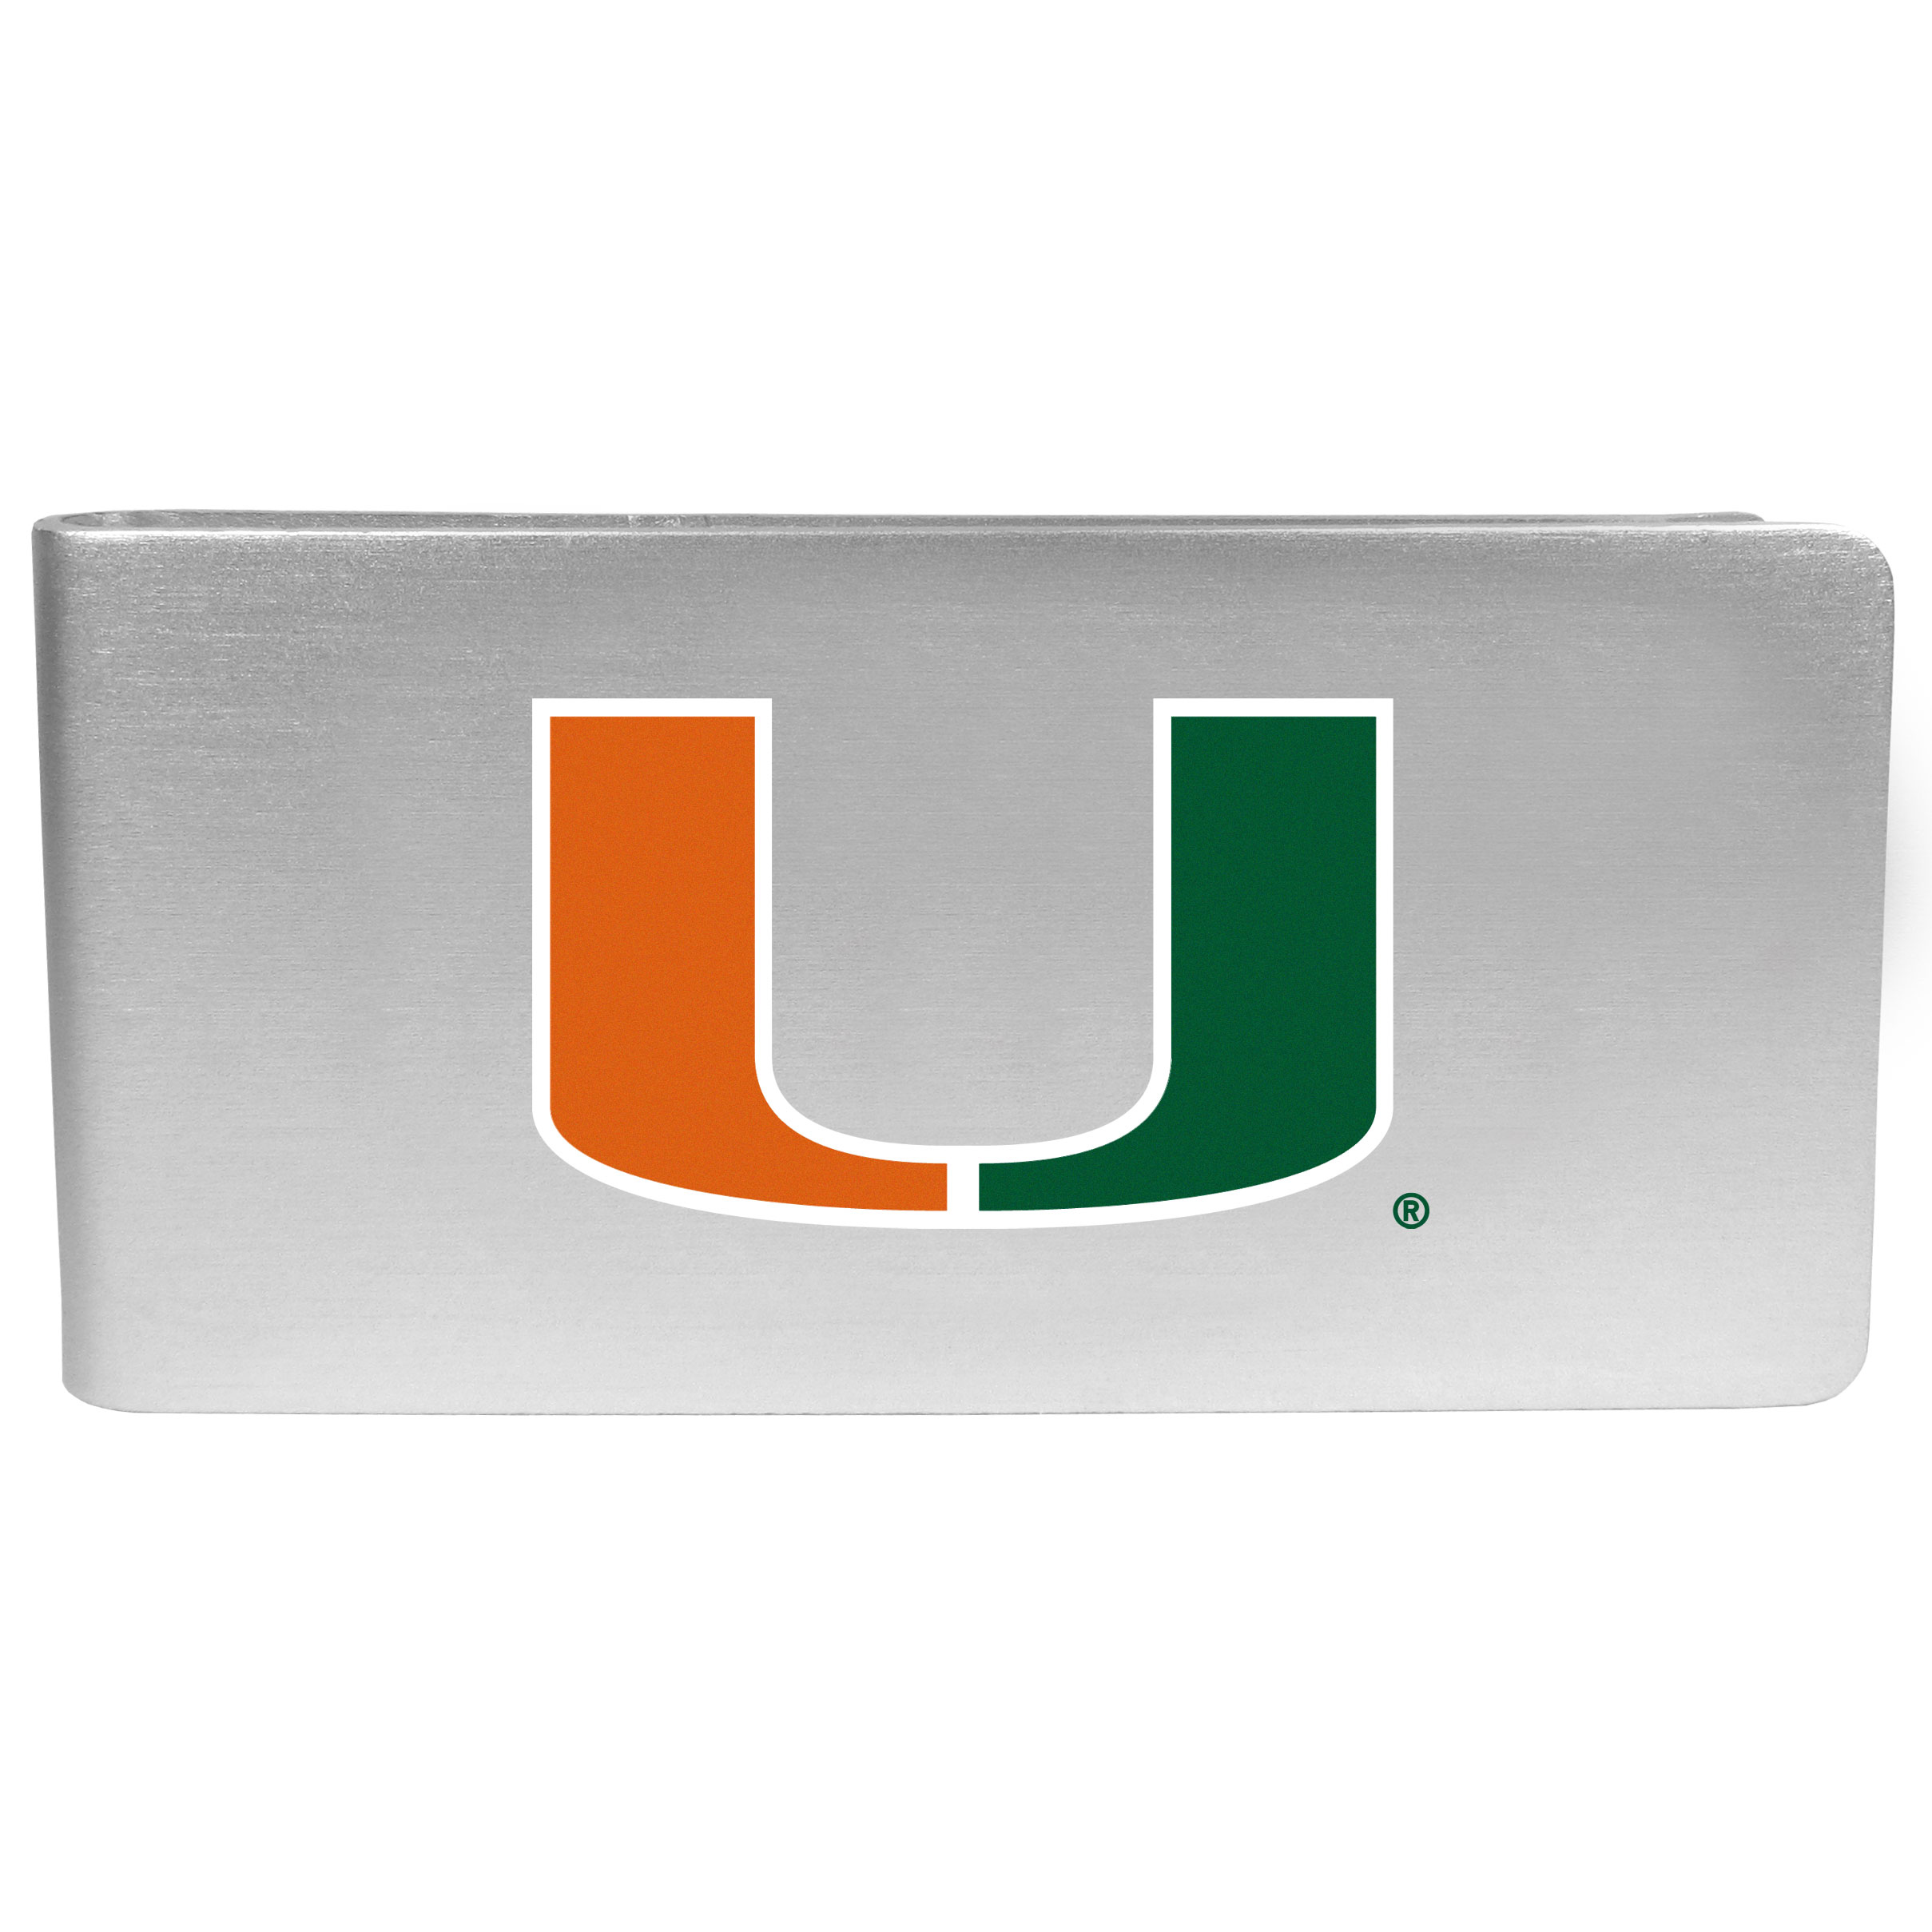 Miami Hurricanes Logo Money Clip - Our brushed metal money clip has classic style and functionality. The attractive clip features the Miami Hurricanes logo expertly printed on front.